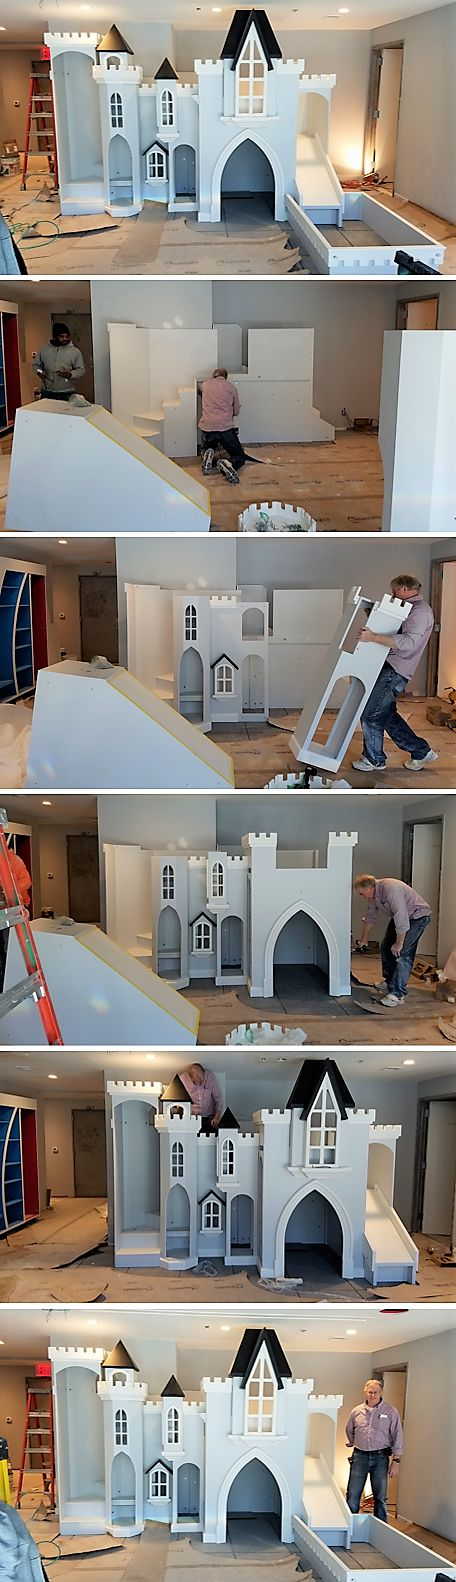 Check out this custom castle playhouse, built for Sky View Parc in New York City. If you've been looking for a playhouse for your office or business, click here to learn what we can make for you!